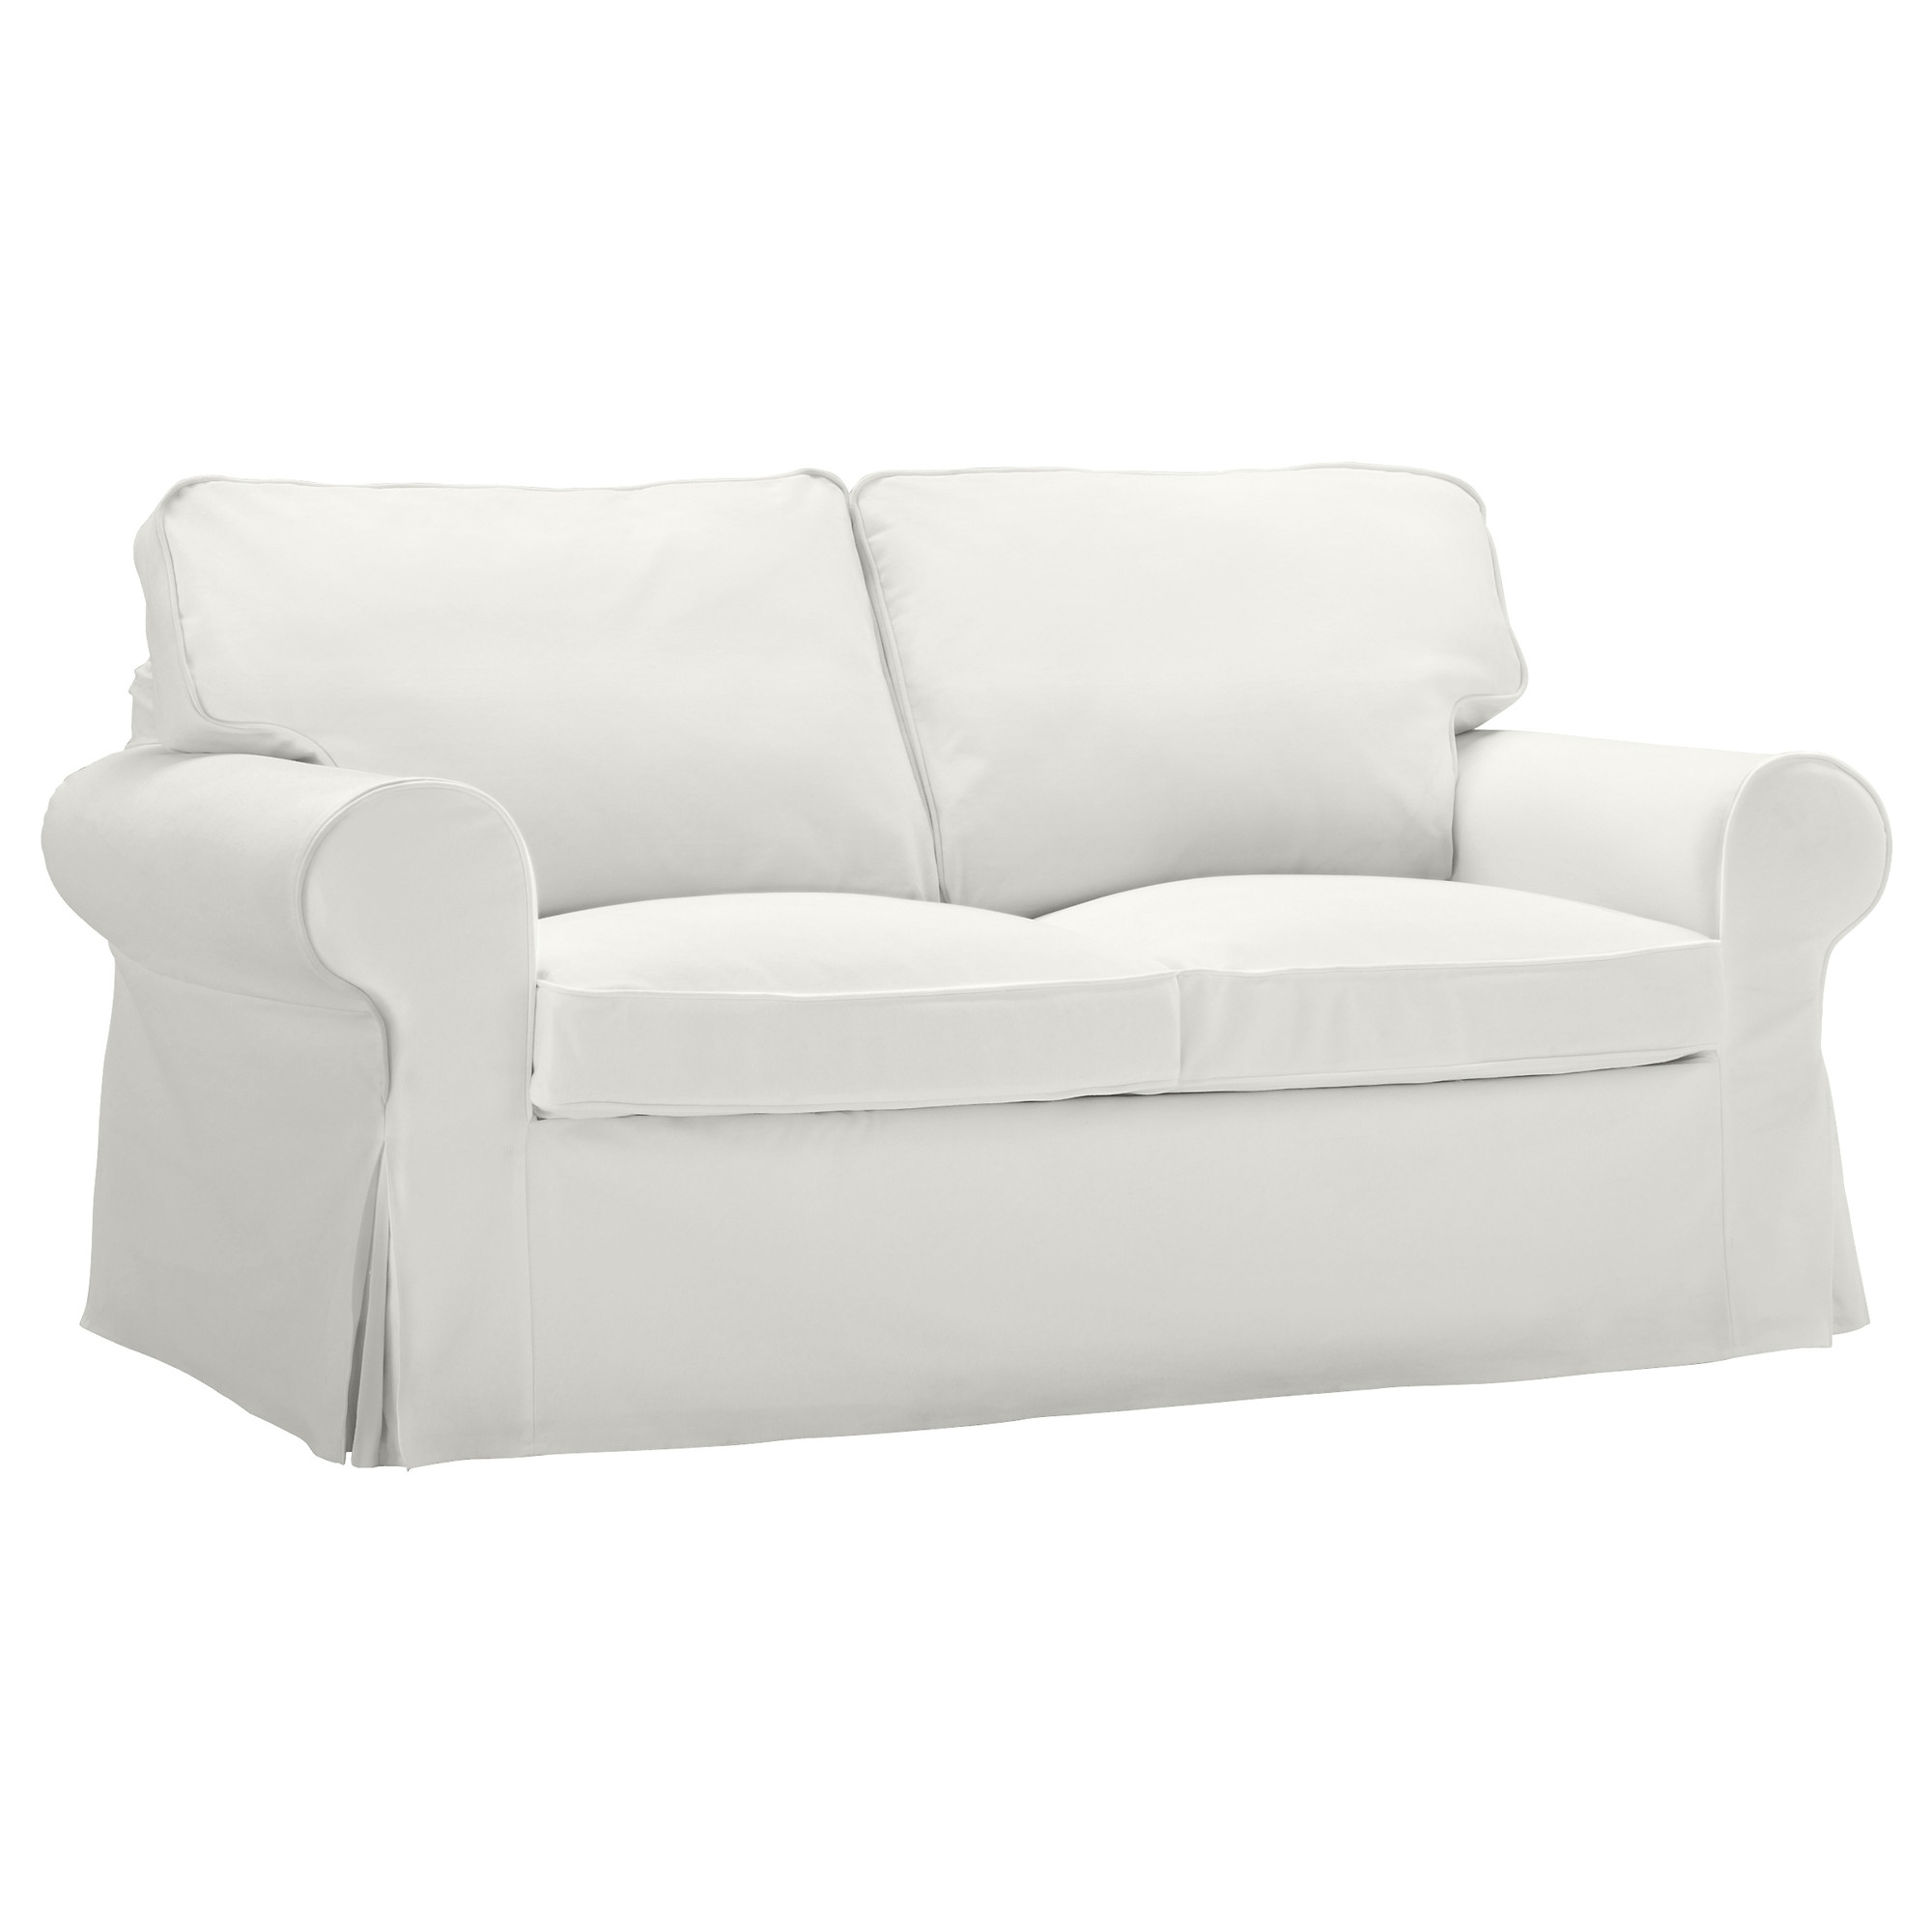 Photo Gallery Of Ikea Two Seater Sofas